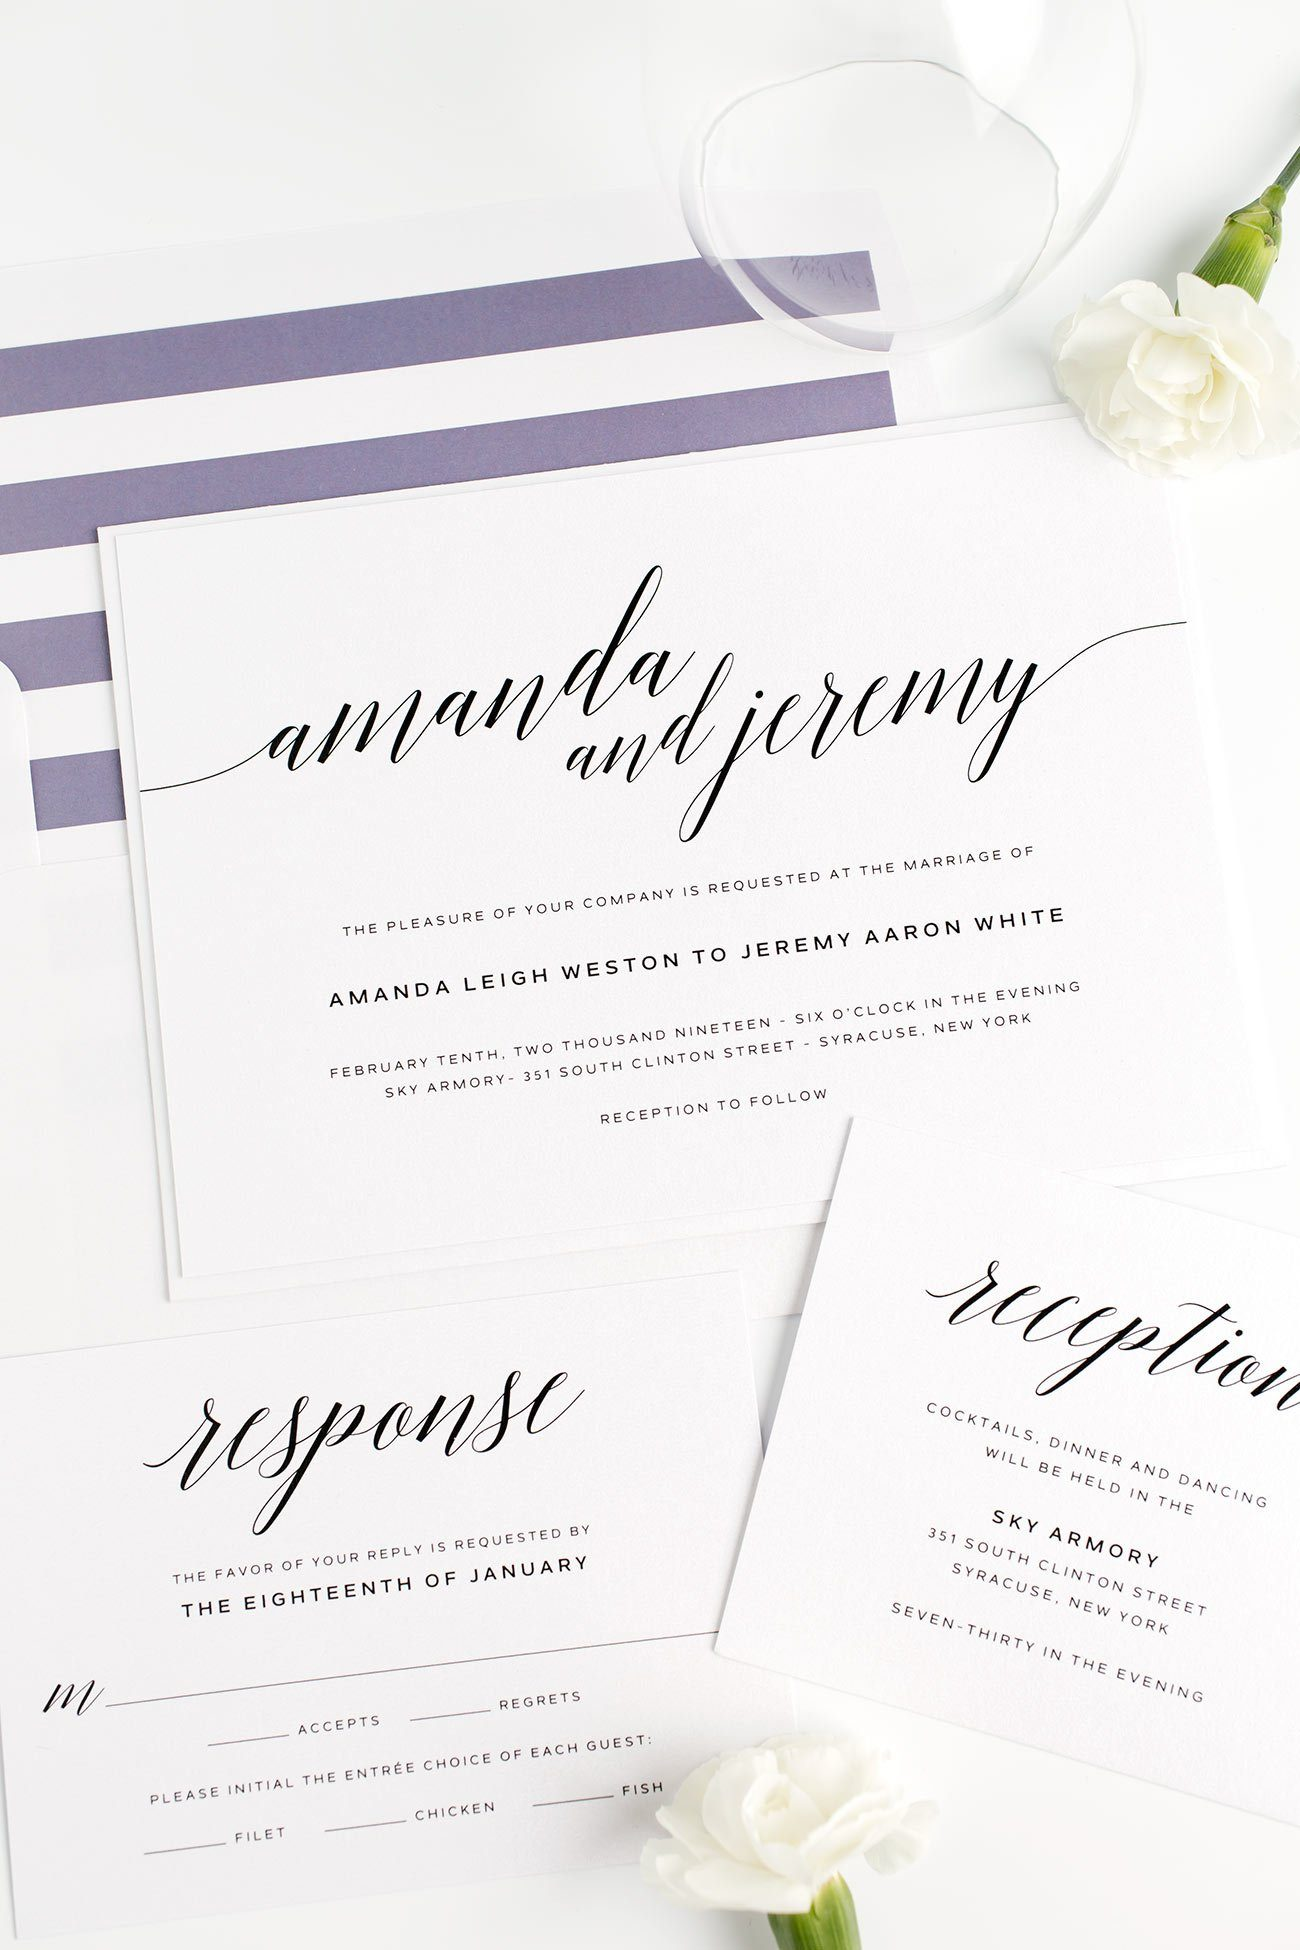 Dramatic Wedding Invitations in Purple Dusk with a Striped Envelope Liner